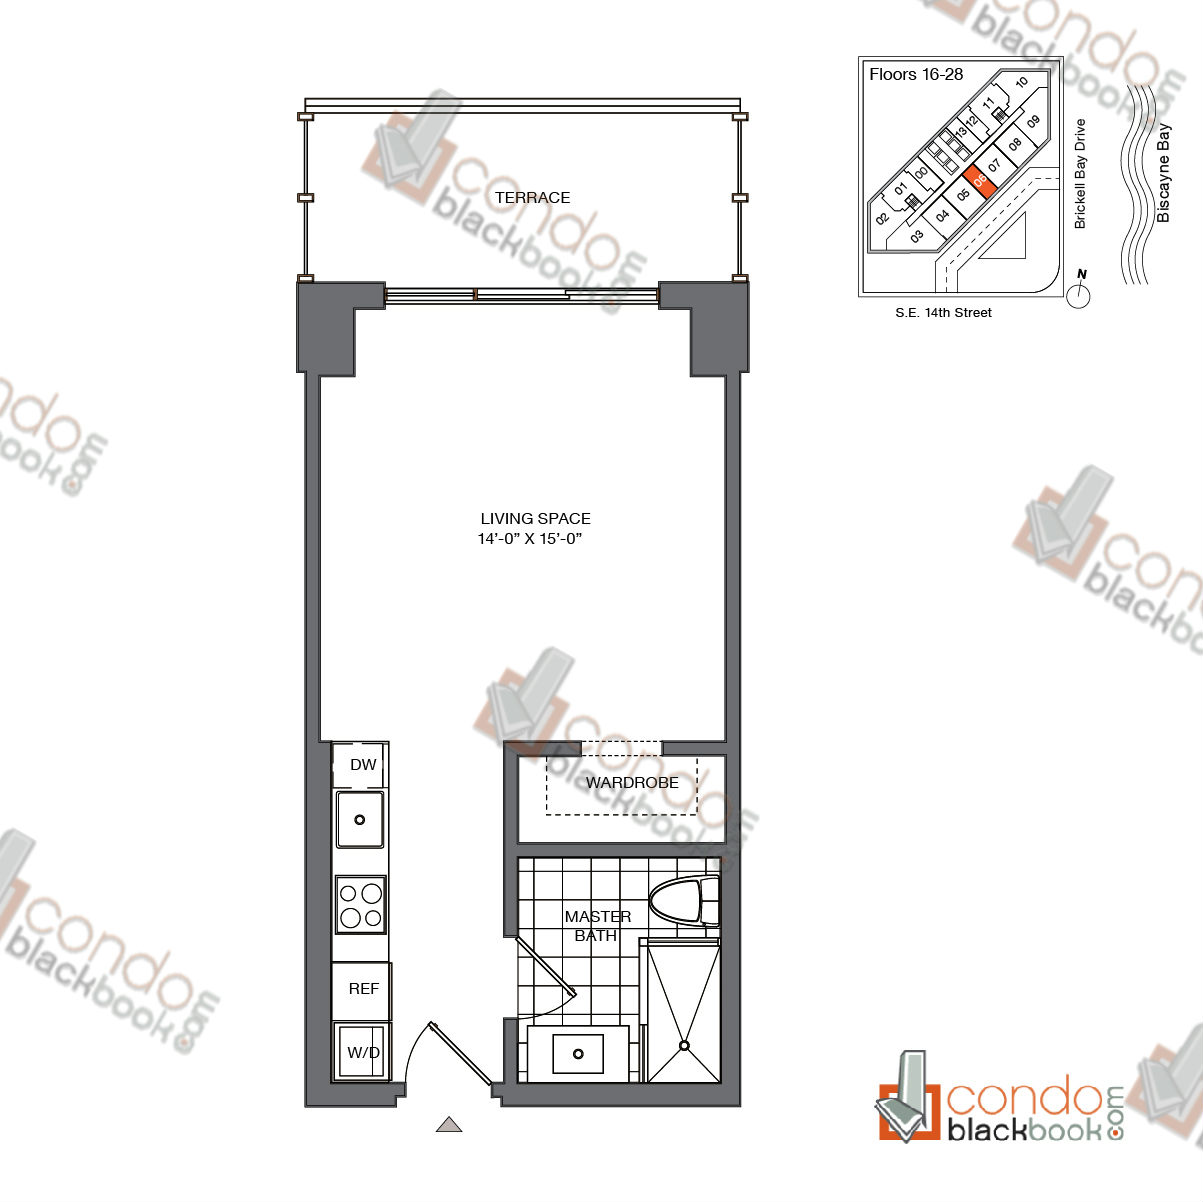 Floor plan for Brickell House Brickell Miami, model S1_16-28, line 06, 0/1 bedrooms, 420 sq ft